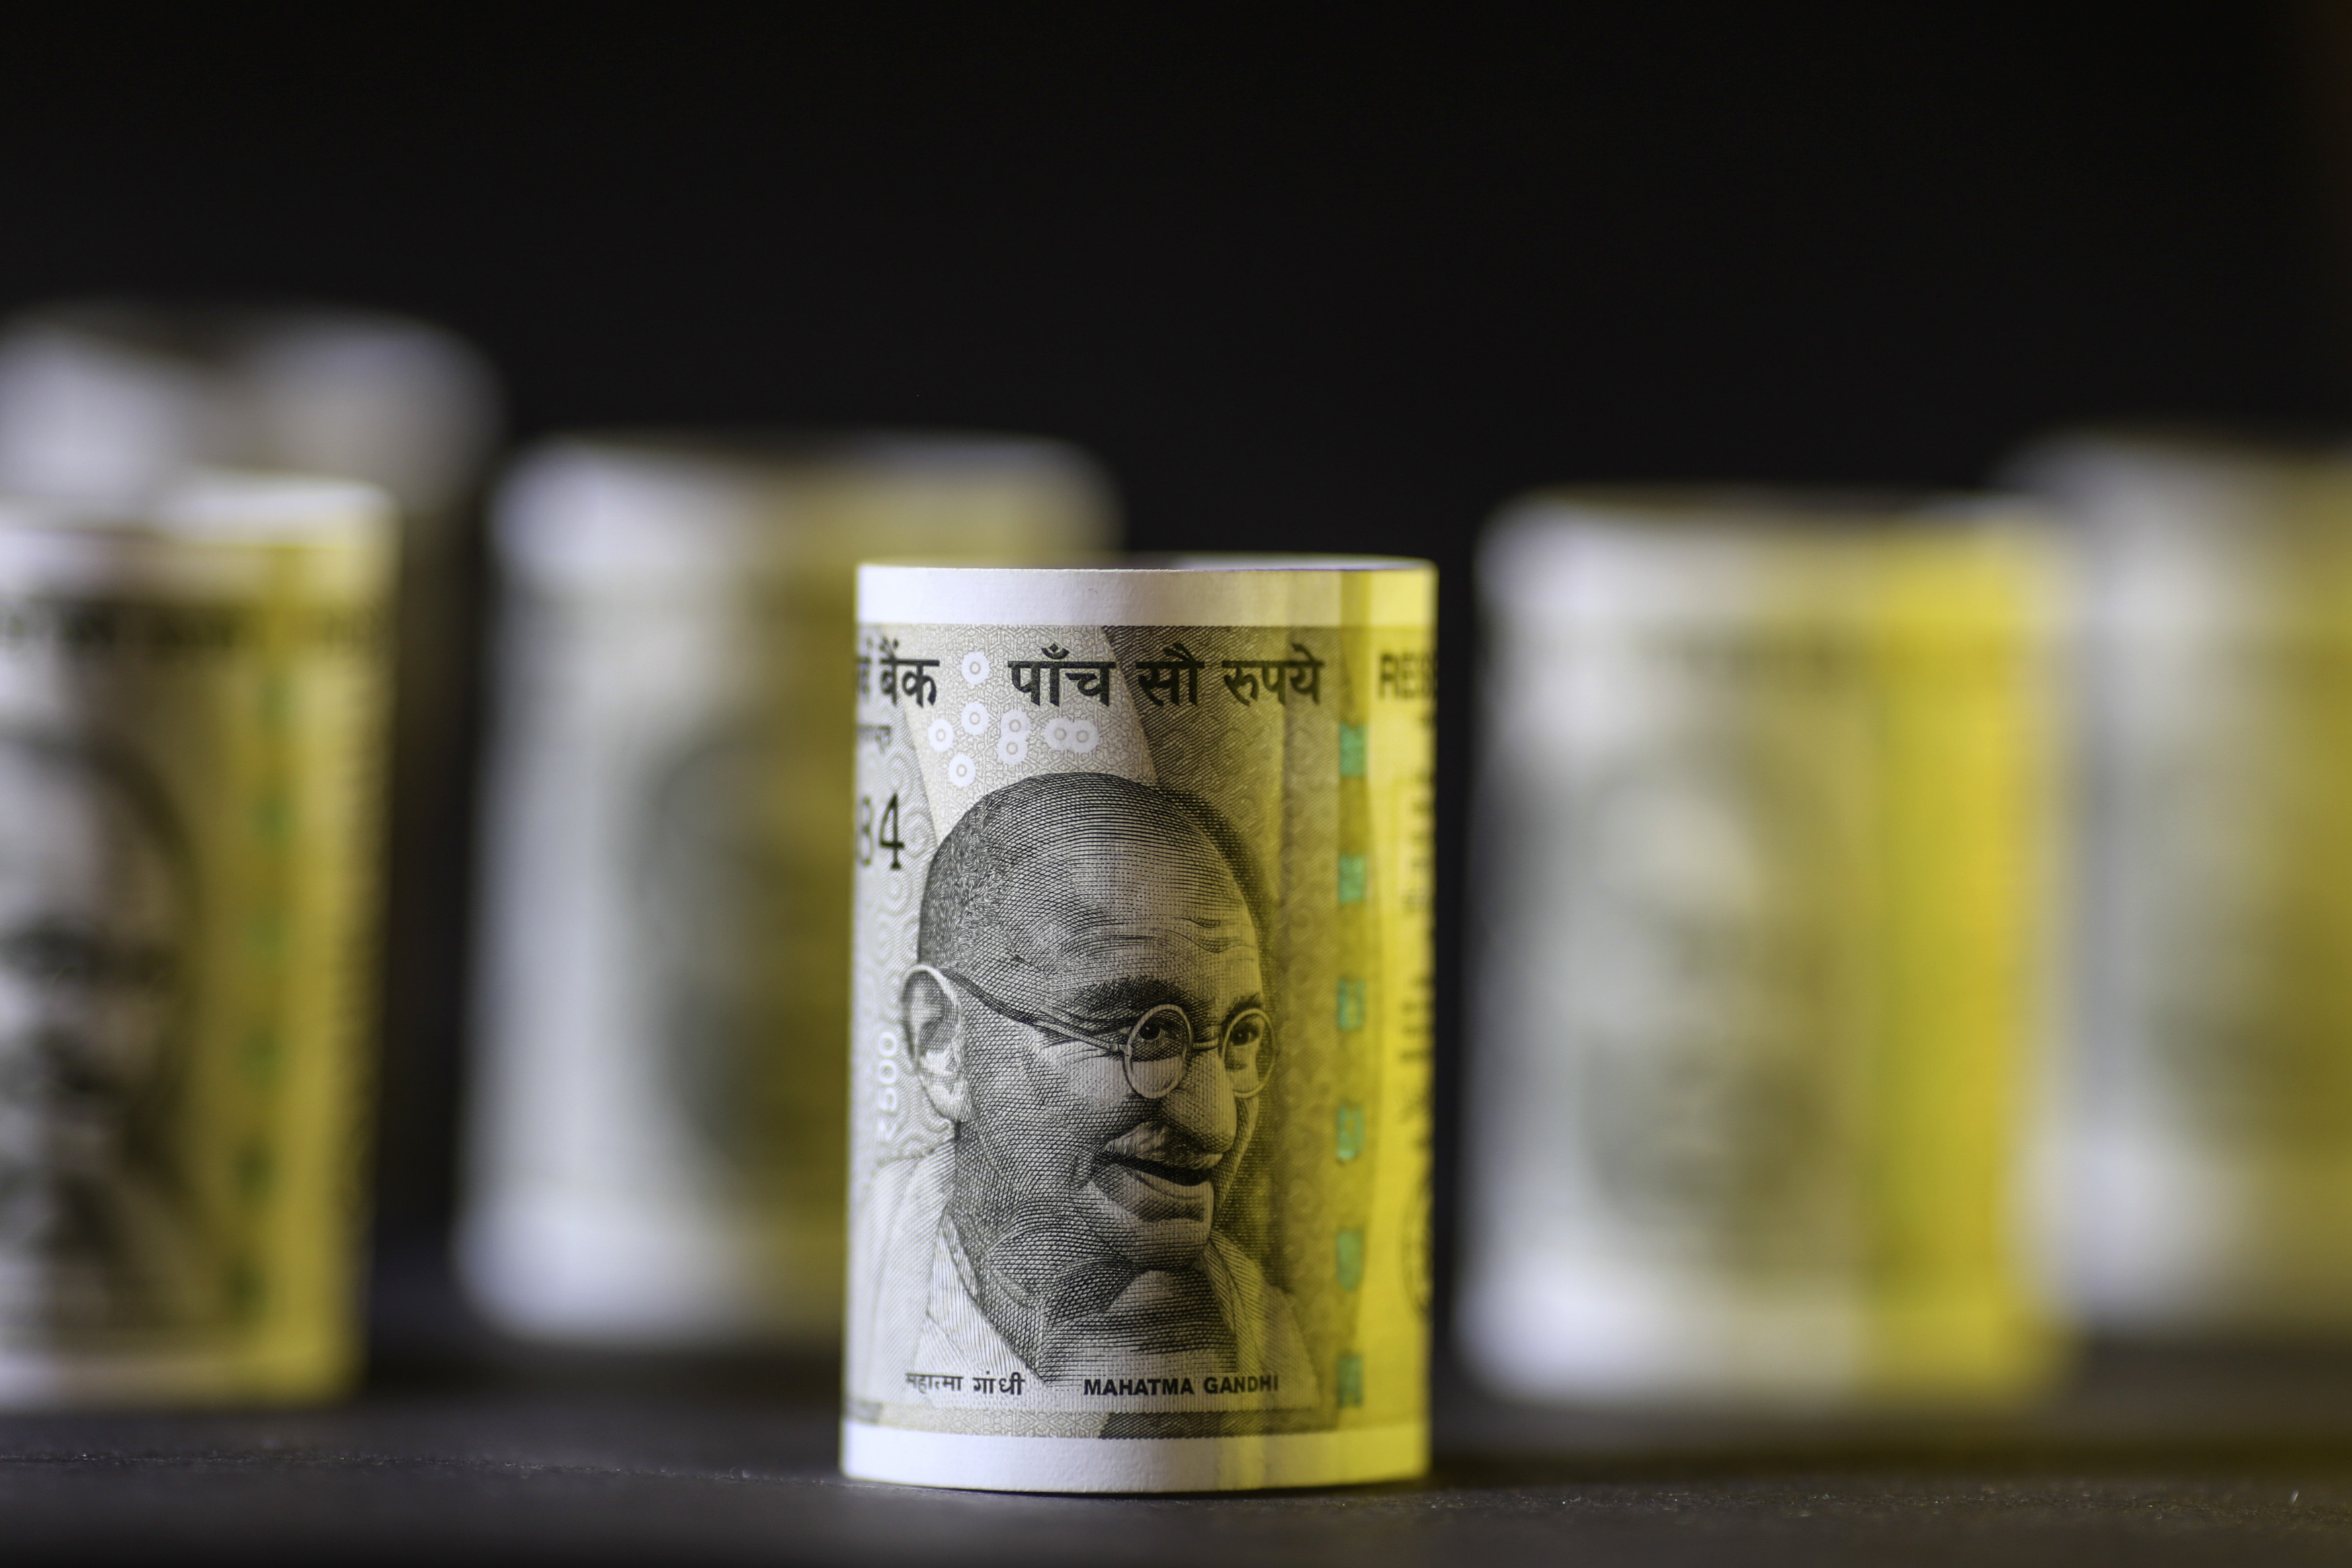 The Clearing Corporation Of India Distributes Foreign Exchange Rates On Bloomberg Platform